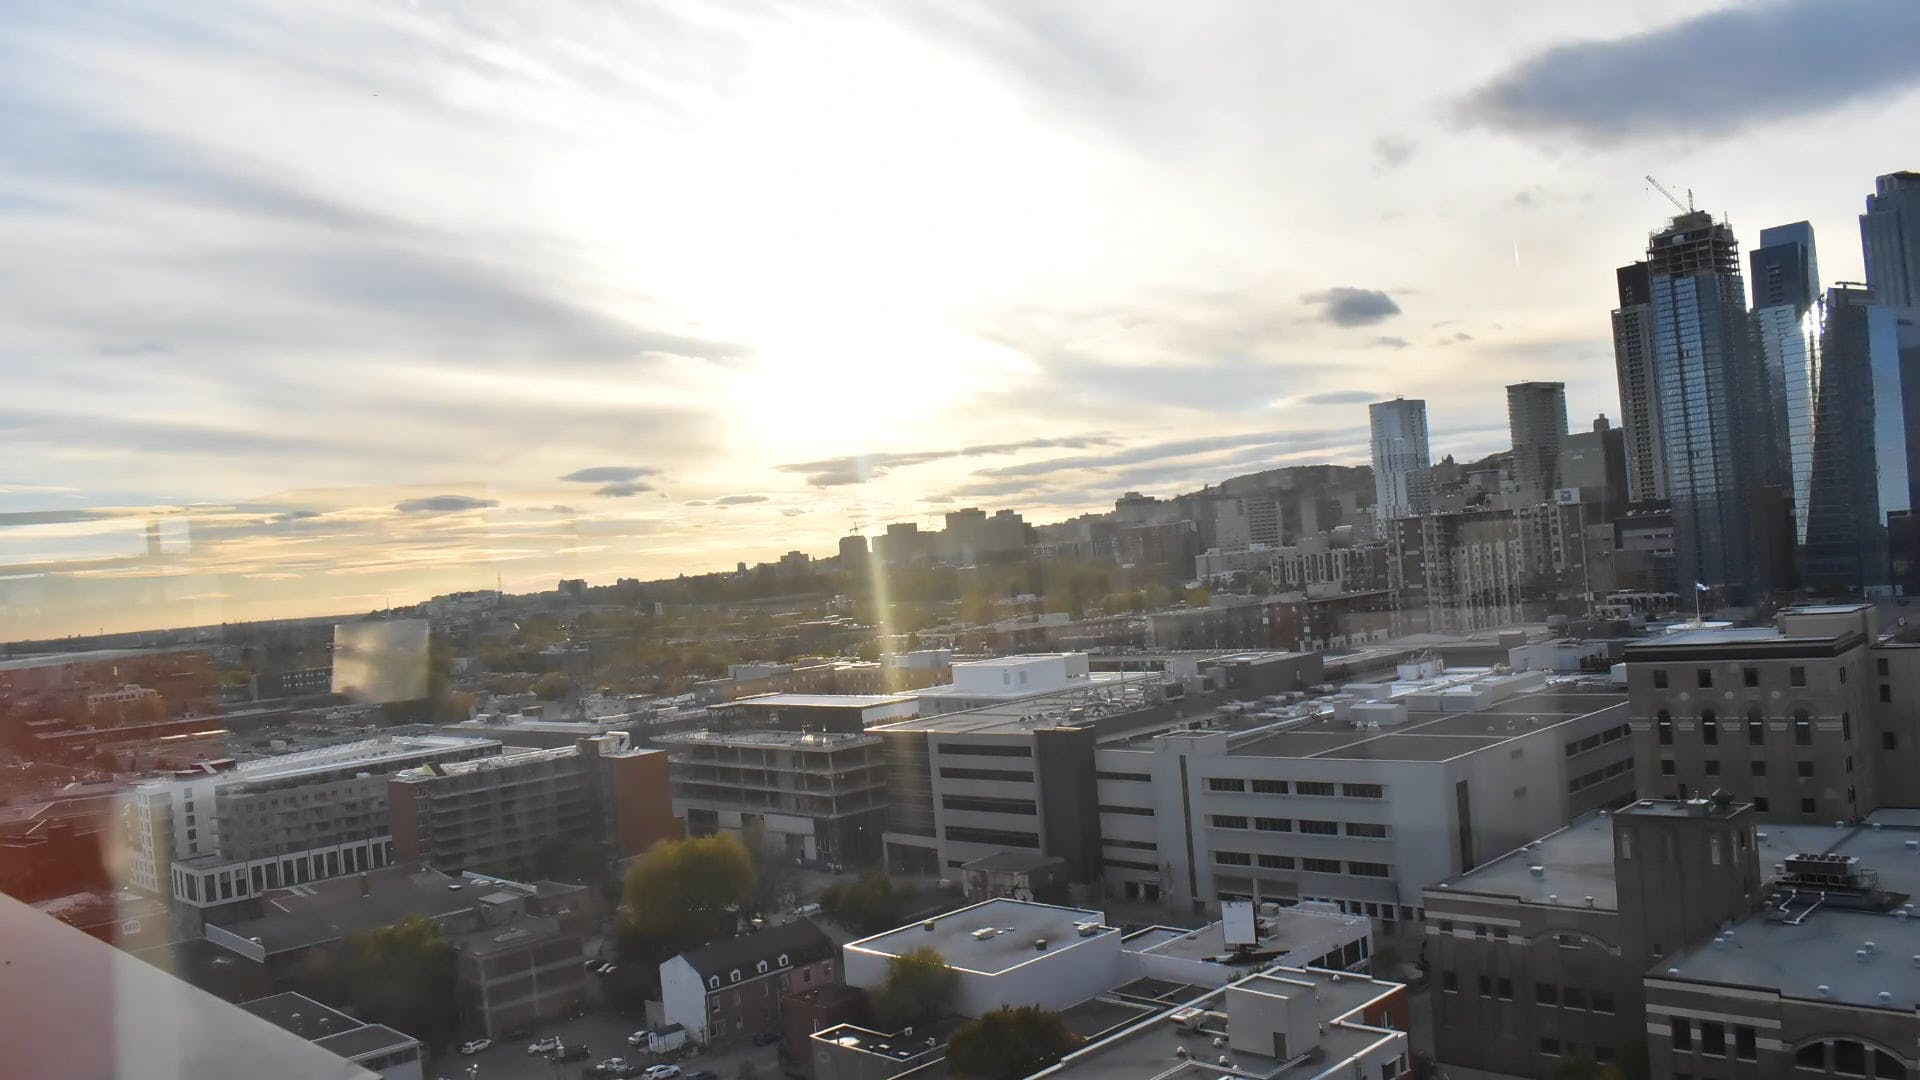 Time Lapse Video Of Sky Under City